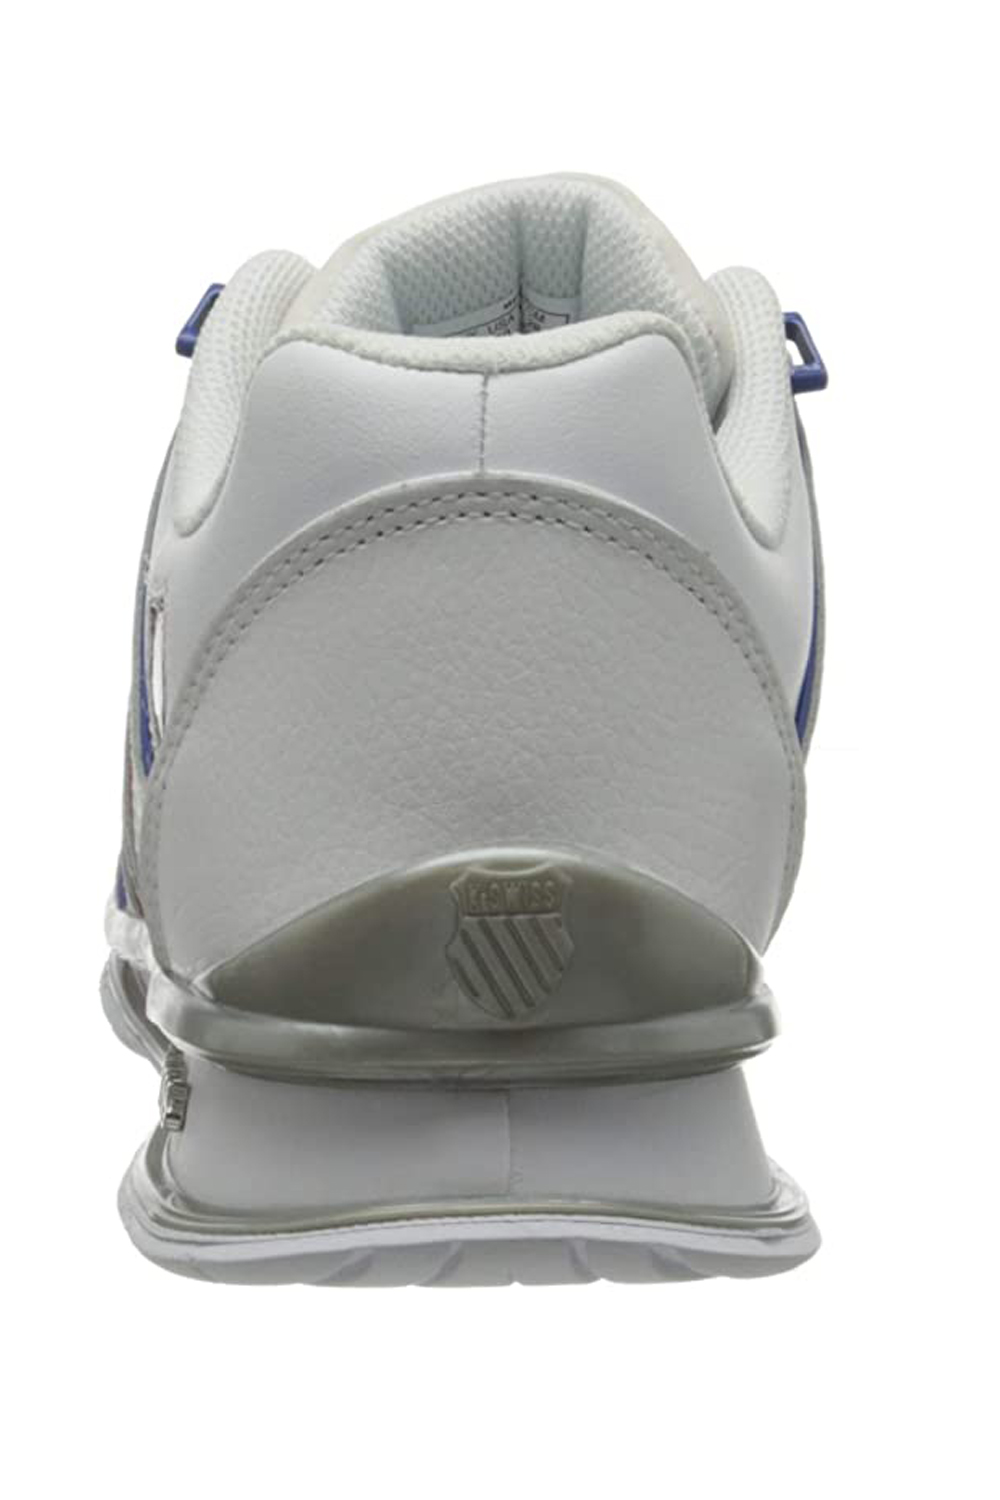 thumbnail 27 - K-Swiss Mens Comfortable Low Top Classic Leather Suede Rinzler Trainers Sneakers